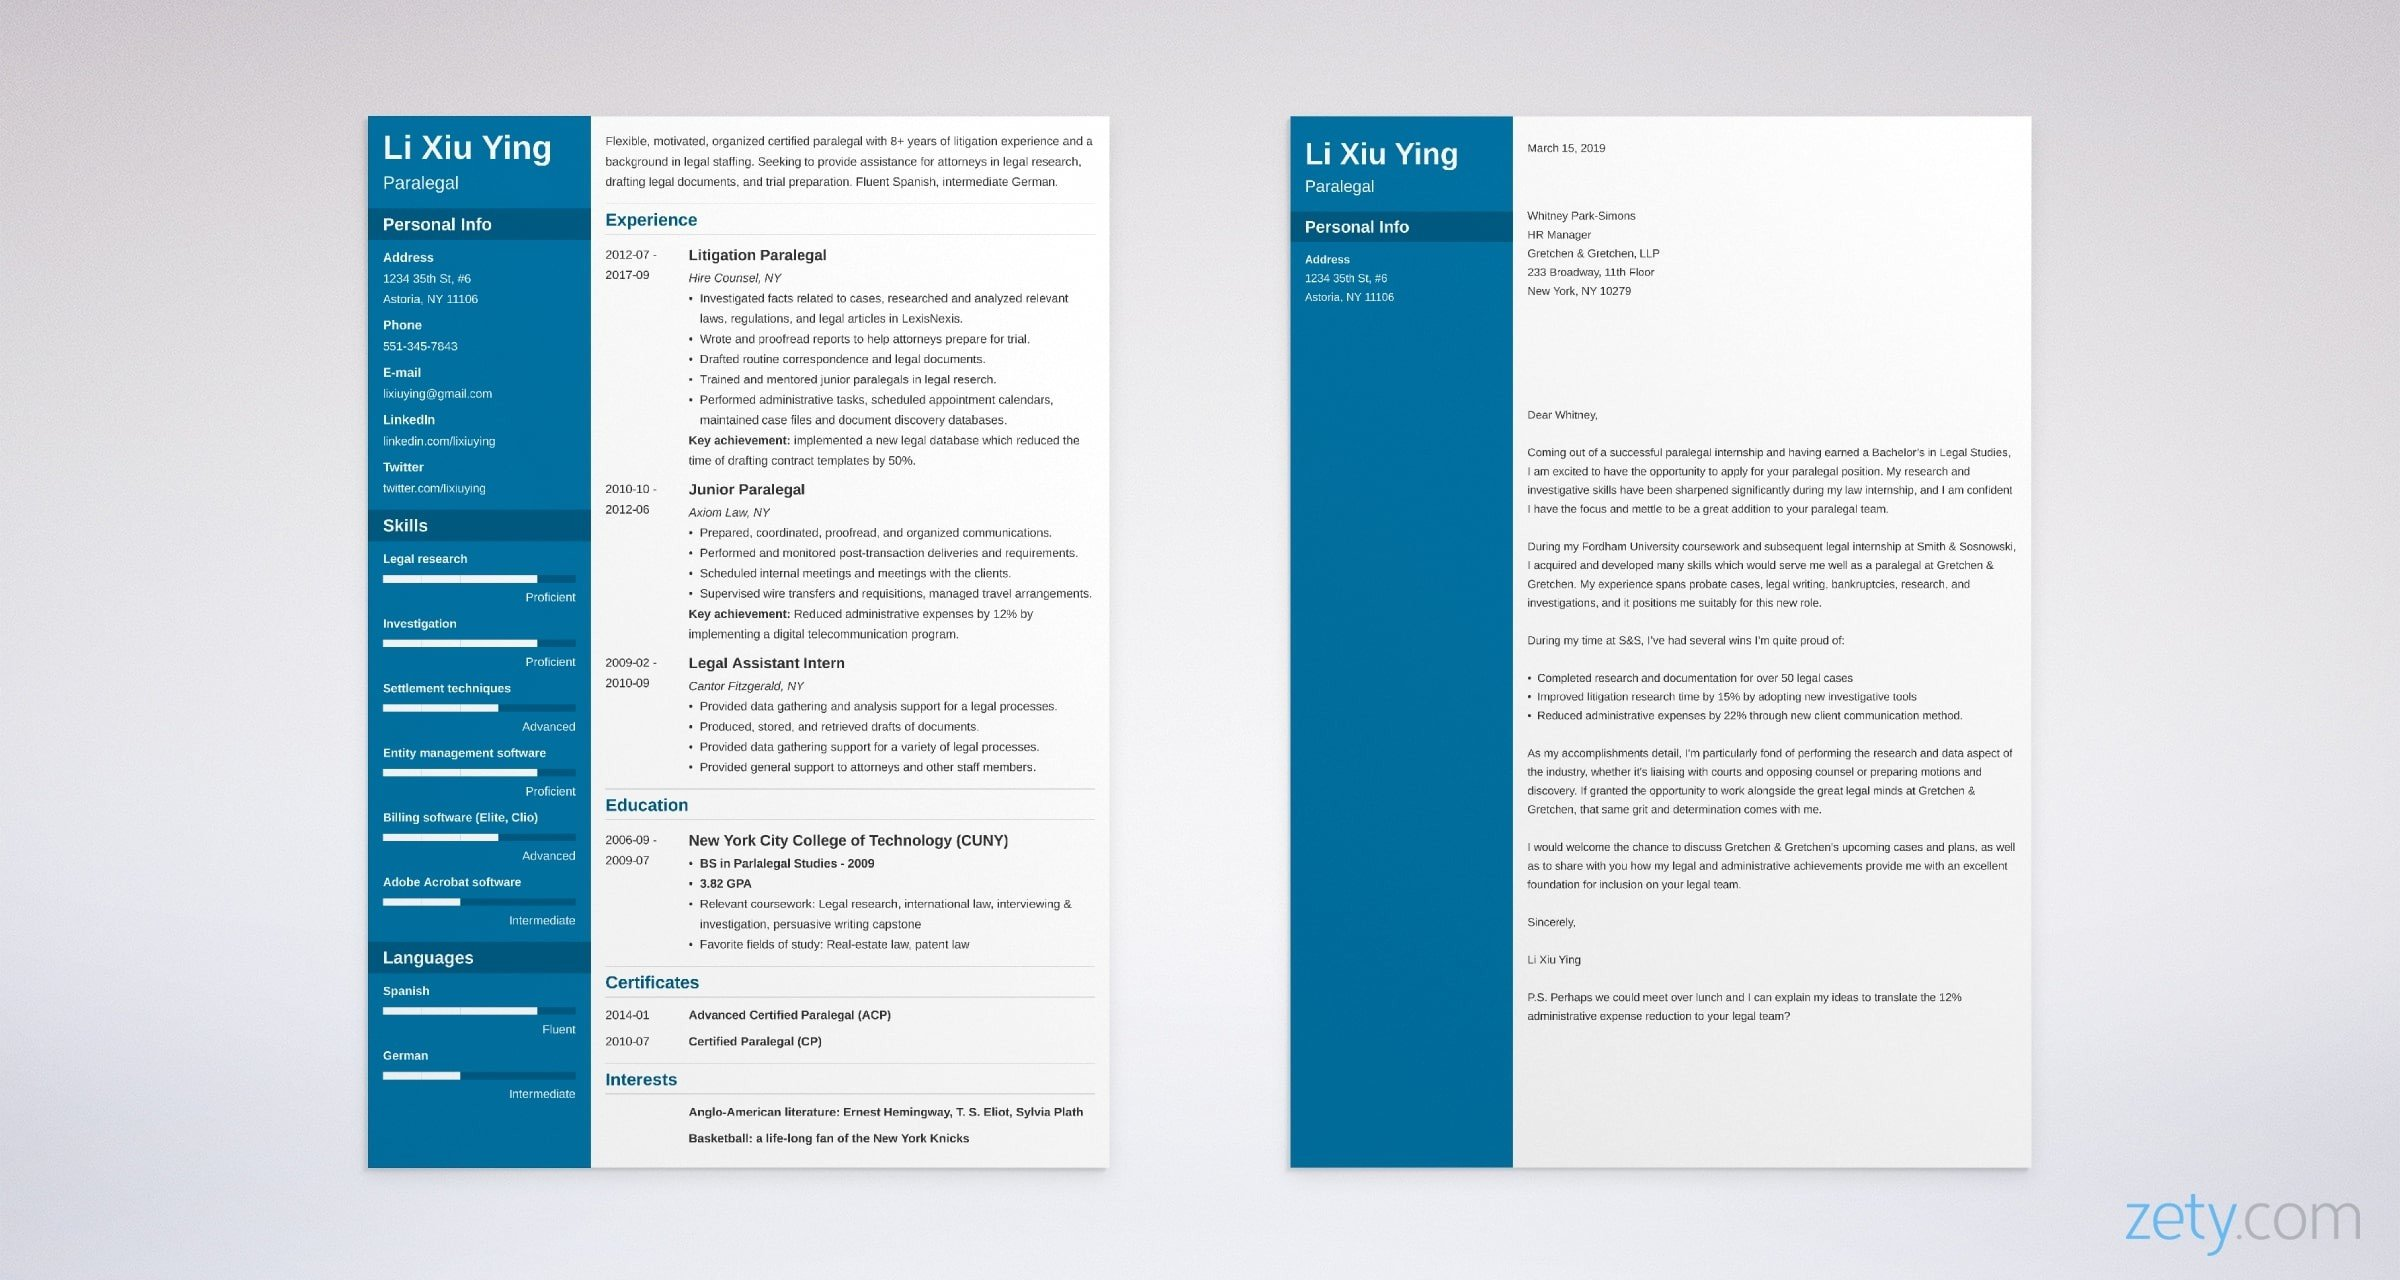 paralegal resume and cover letter set